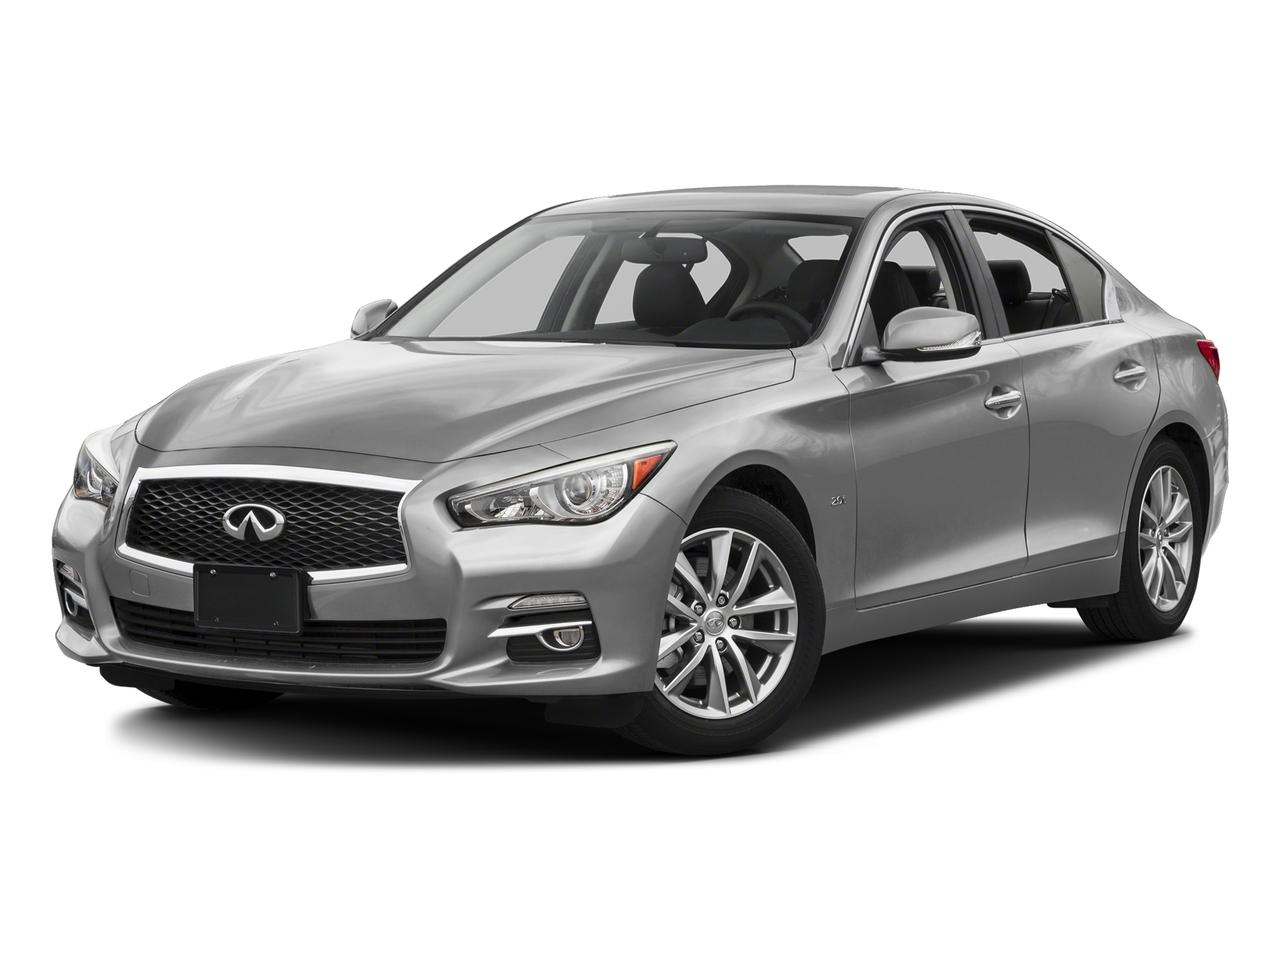 2017 INFINITI Q50 Vehicle Photo in Edinburg, TX 78542